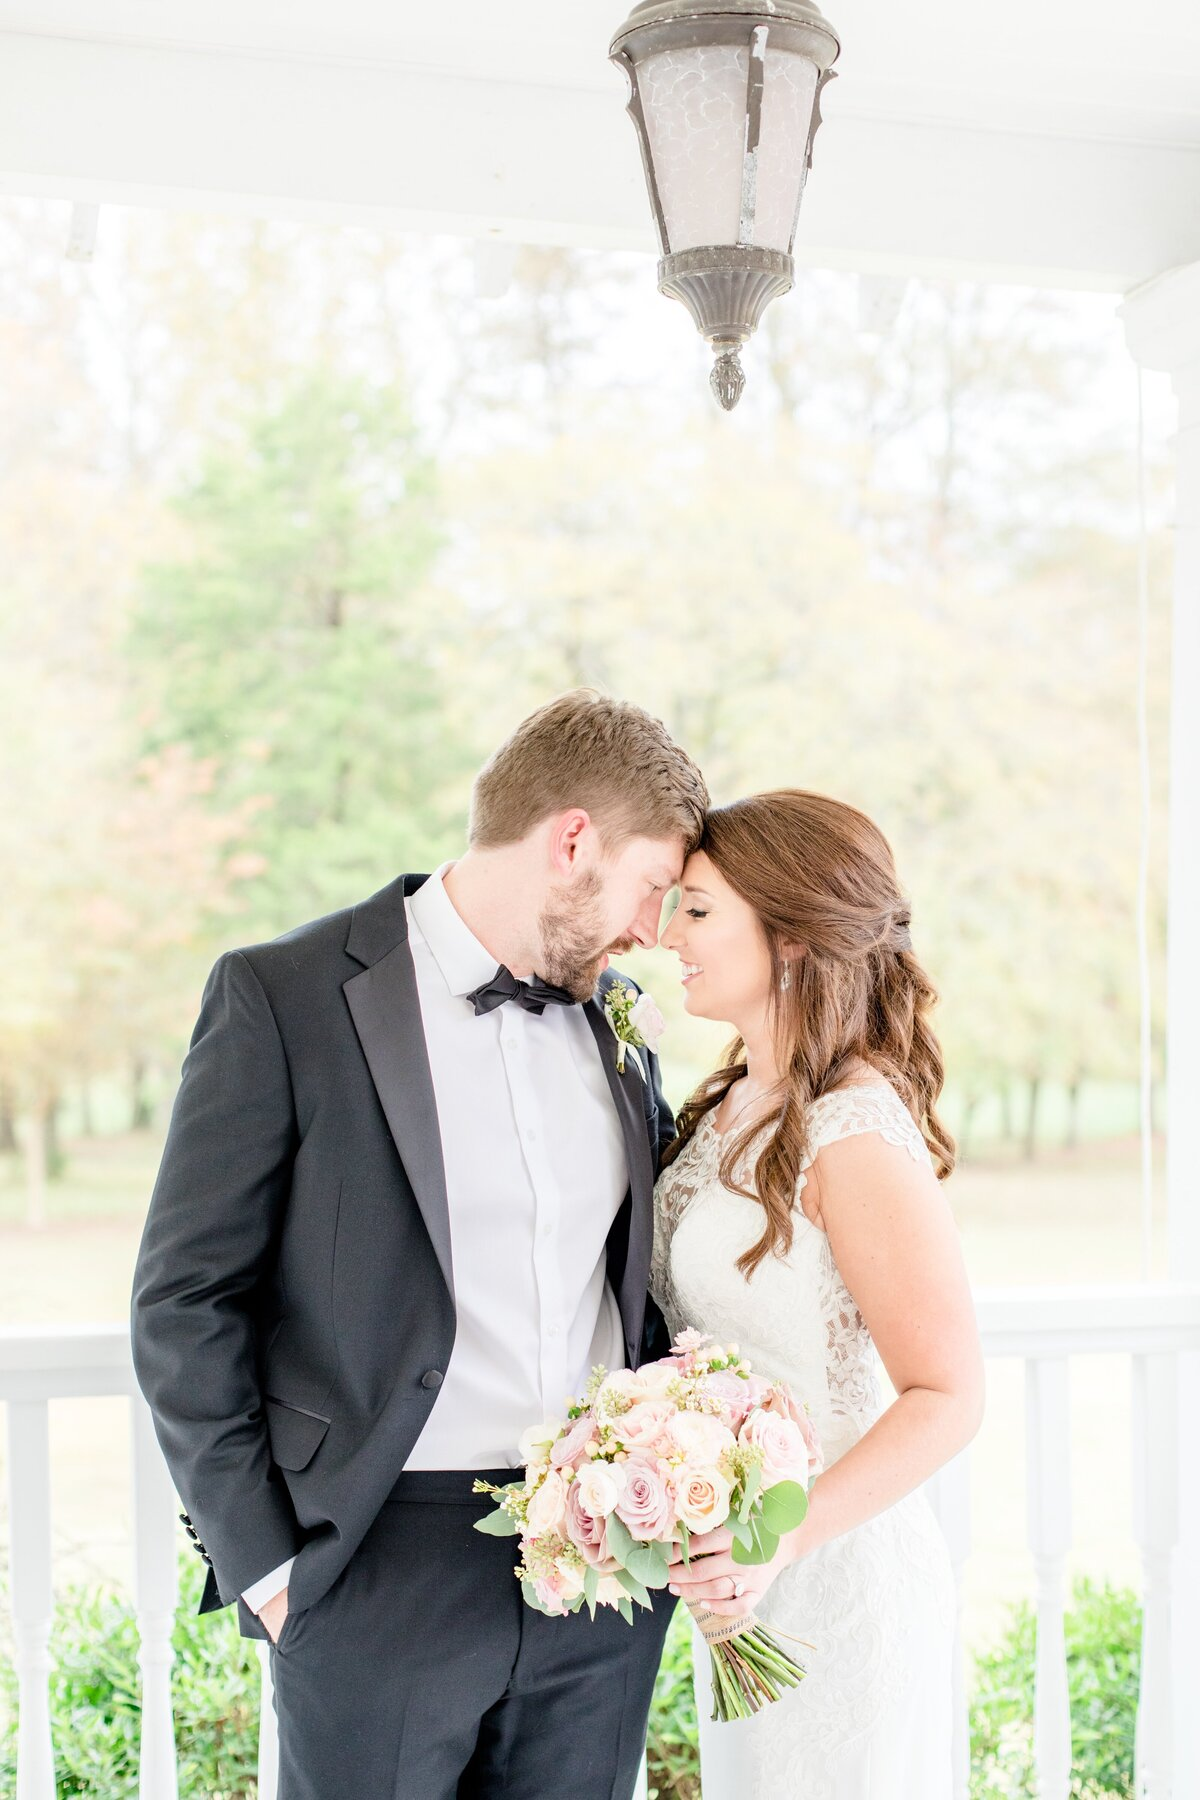 Sonnet House Wedding - Birmingham, Alabama Wedding Photographers Katie & Alec 10